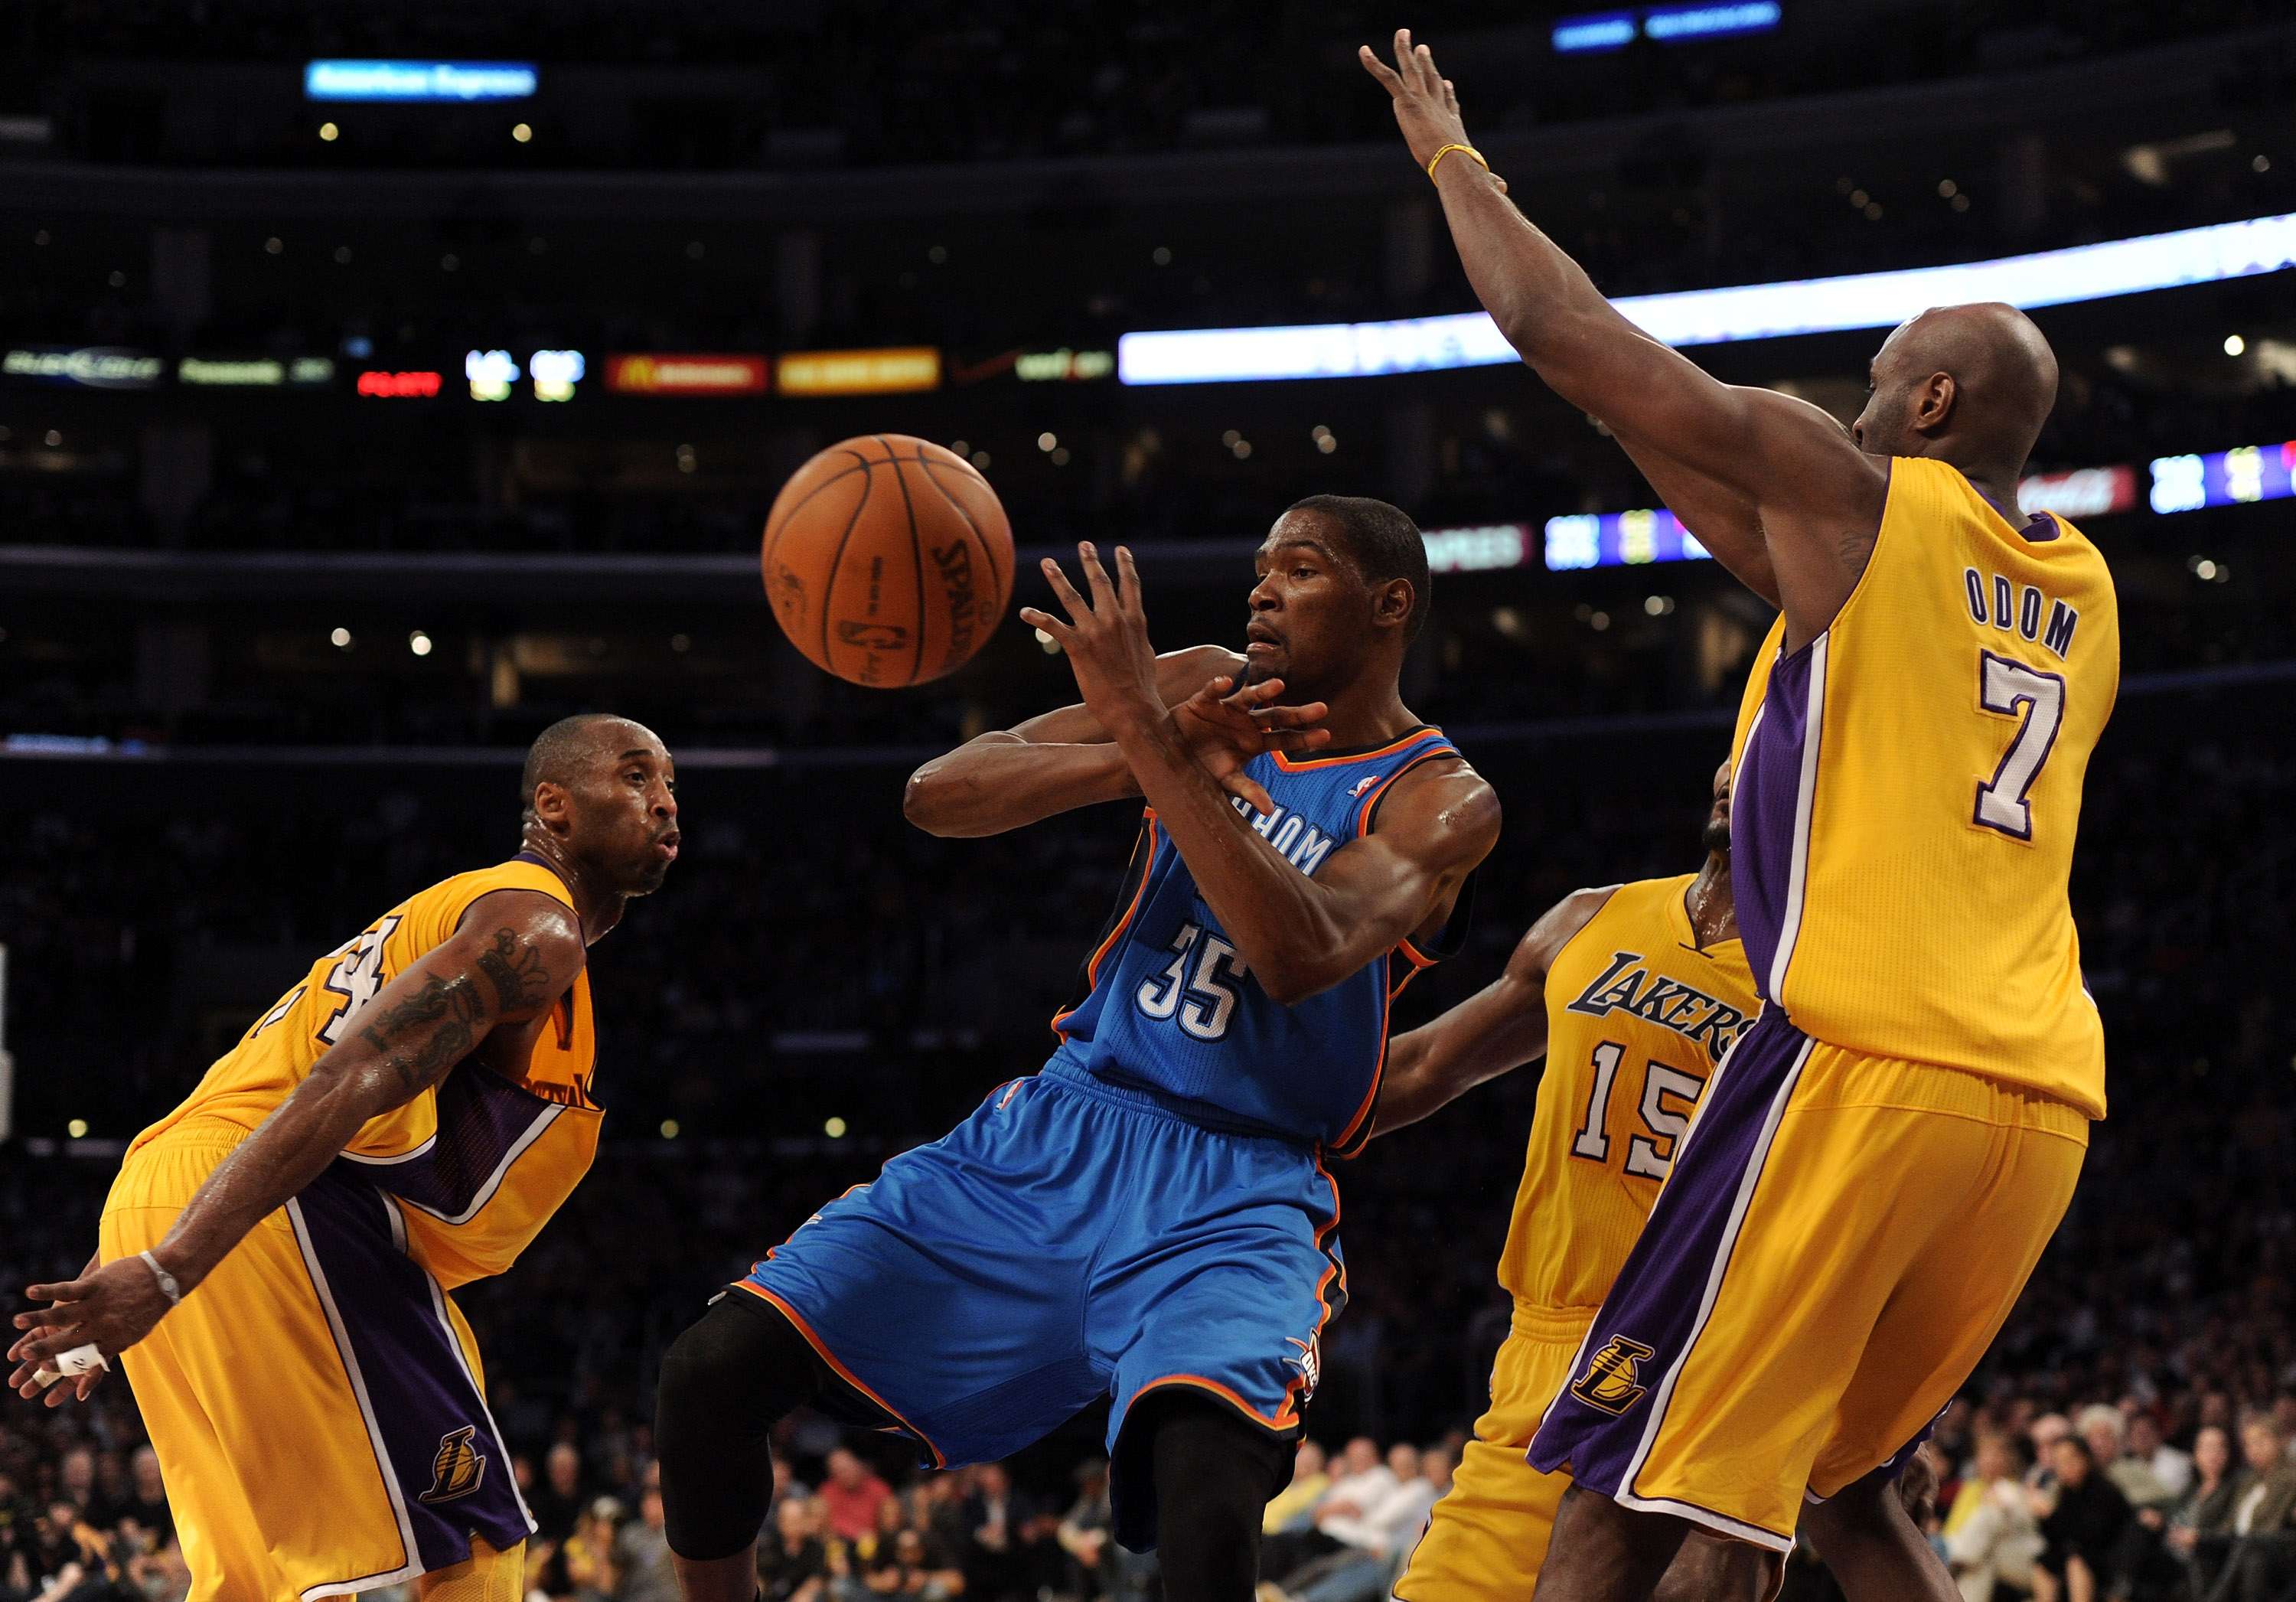 LOS ANGELES, CA - JANUARY 17:  Kevin Durant #35 of the Oklahoma City Thunder has the ball knocked away by Kobe Bryant #24 and Lamar Odom #7 of the Los Angeles Lakers at the Staples Center on January 17, 2011 in Los Angeles, California.   NOTE TO USER: Use